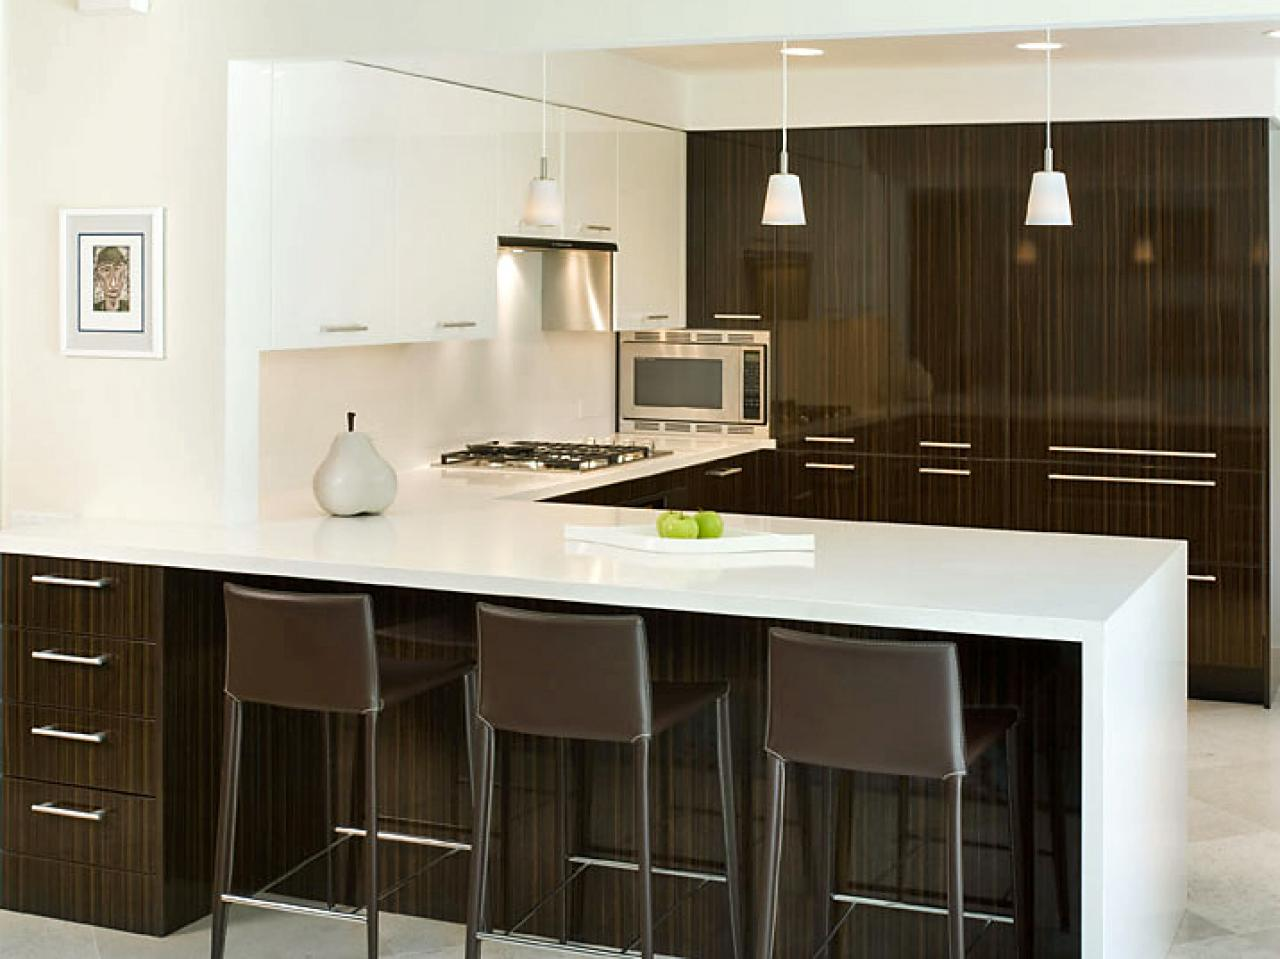 Peninsula kitchen design pictures ideas tips from hgtv for Contemporary kitchen design ideas